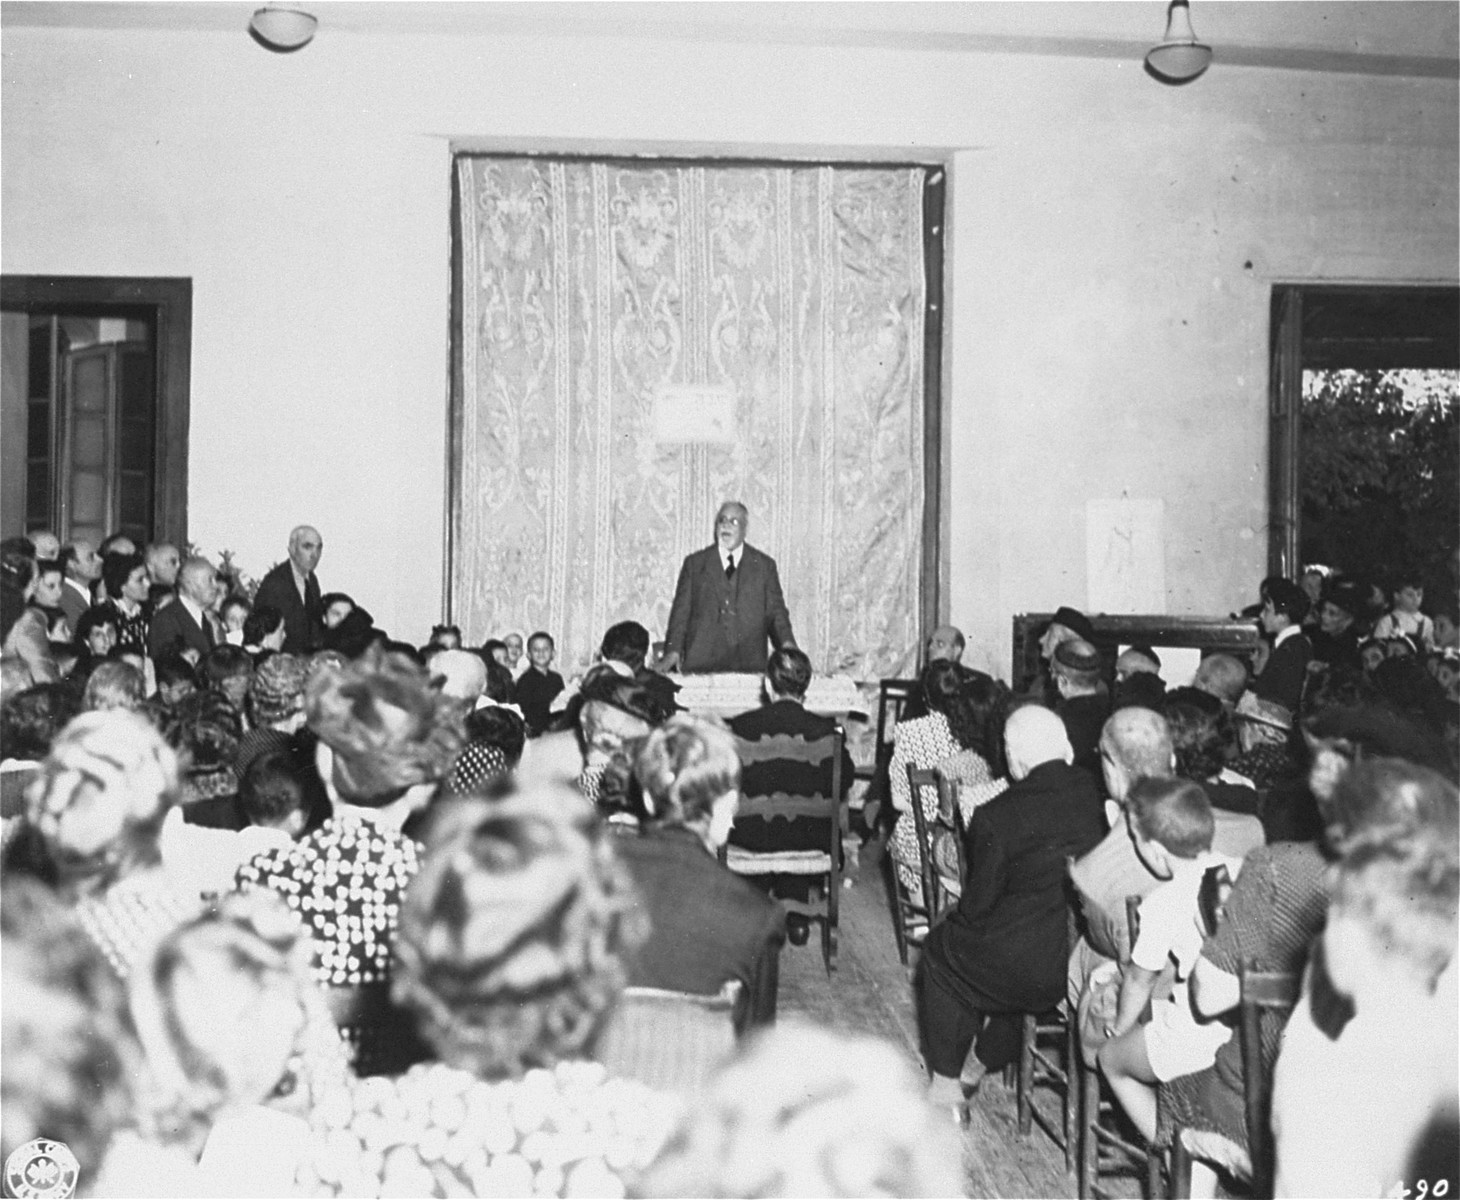 Rabbi David Prato, Chief Rabbi of Rome, speaks to a large congregation during ceremonies at the Jewish Orphanage in Rome.